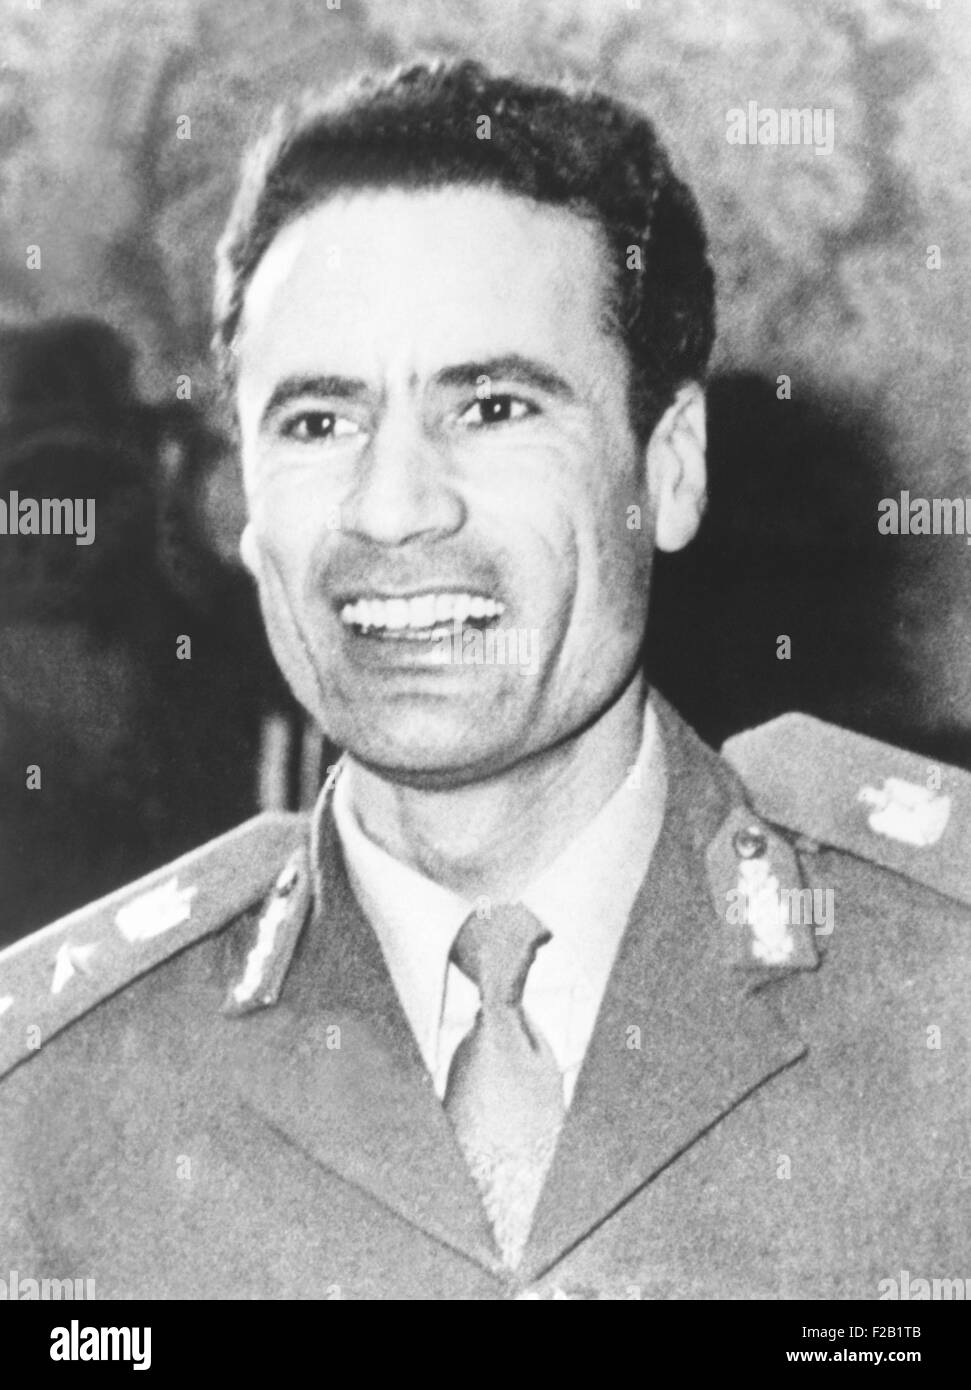 1974 photo of Muammar Gaddafi who assumed power in Libya after 1969 coup d'etat. He ruled as 'Revolutionary - Stock Image